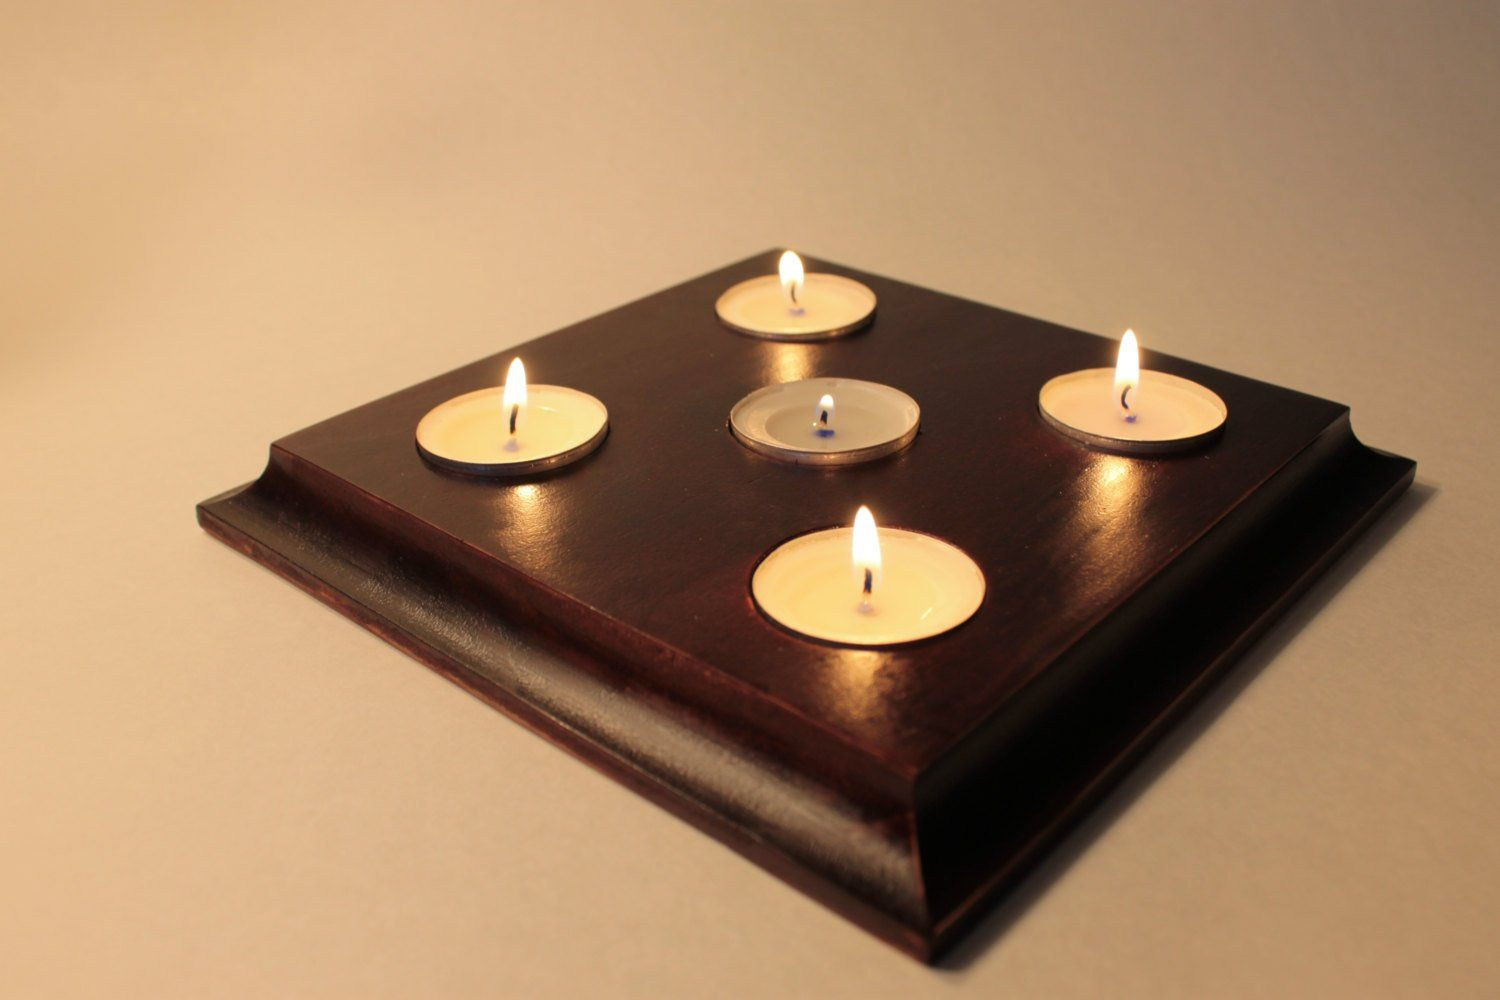 Tea Light Candle Holder Etsy Tea Lights Tealight Candle Holders Candle Holders